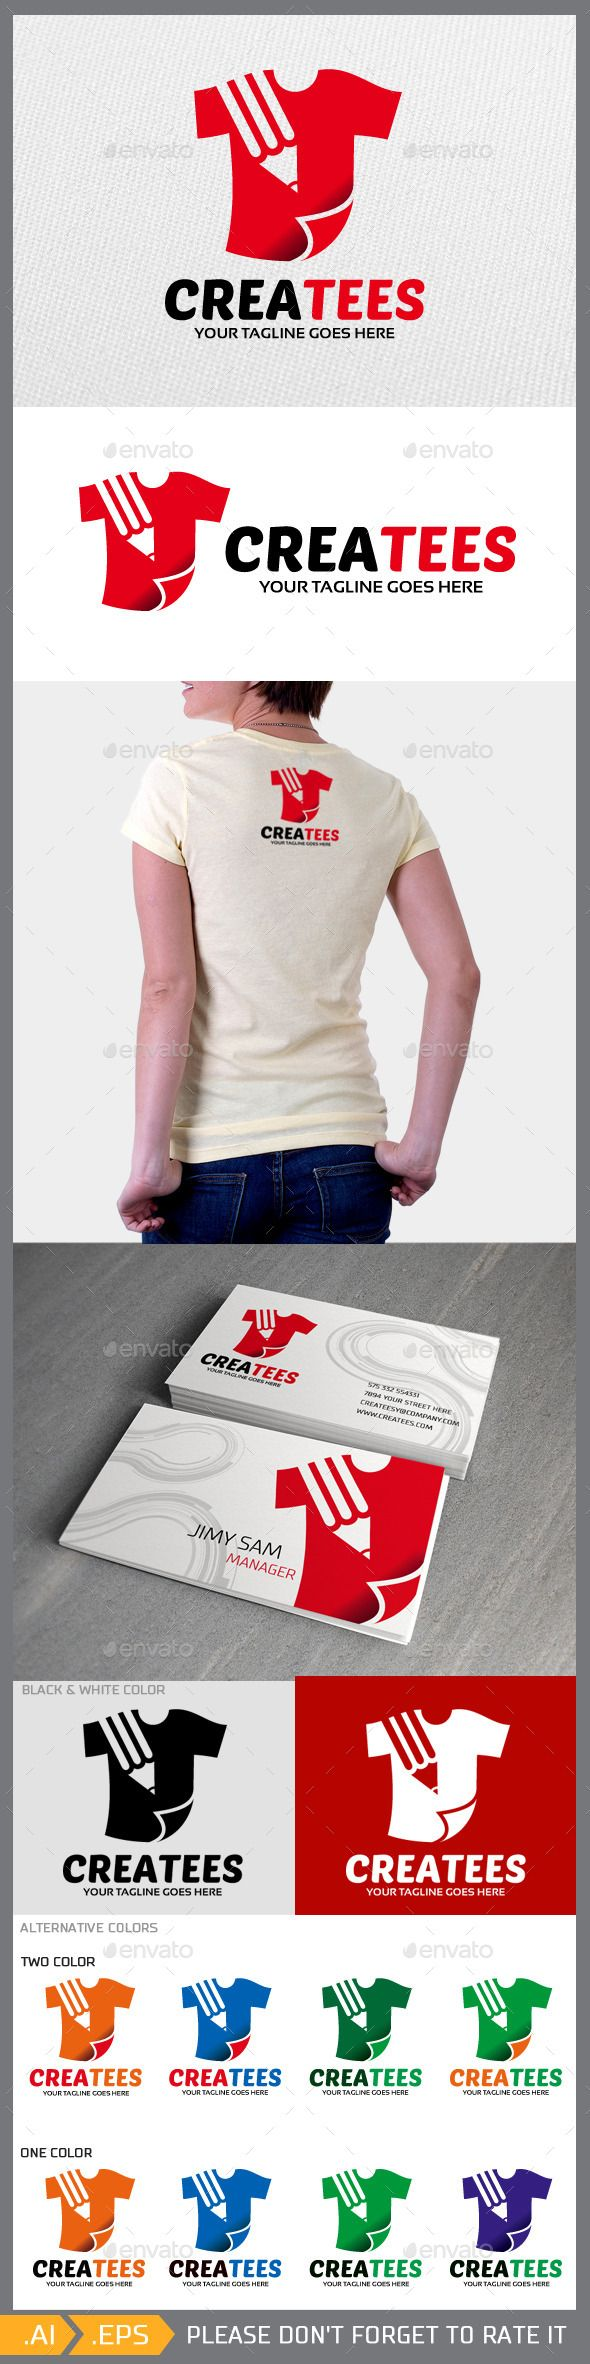 Createes  - Logo Design Template Vector #logotype Download it here: http://graphicriver.net/item/createes-logo-template/10245356?s_rank=1410?ref=nexion